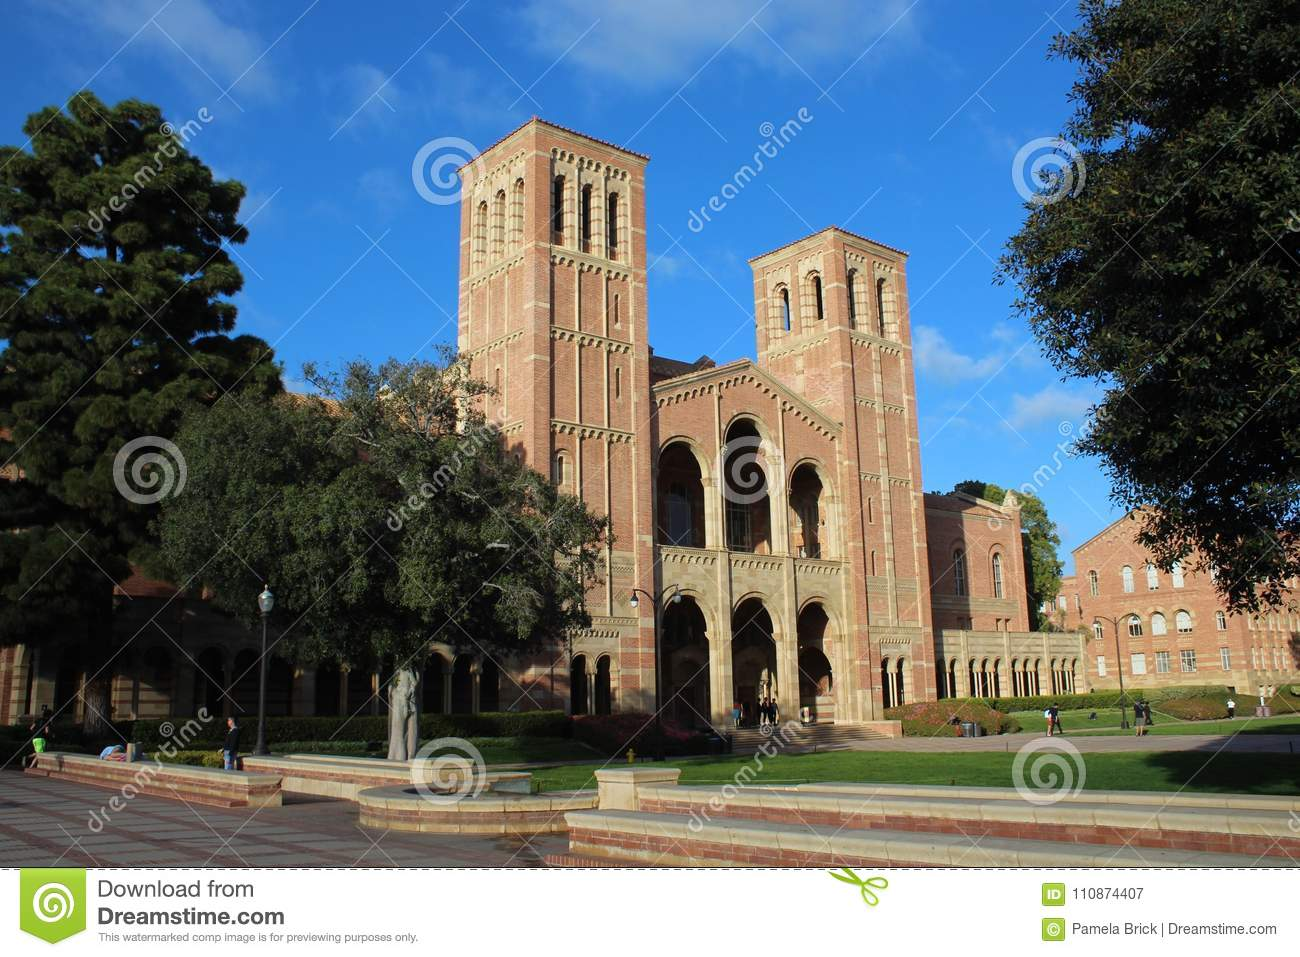 The Hall Is A Performance Arts Building At UCLA That Houses A Concert Hall  And Classrooms. It Is The Most Recognized UCLA Landmark.